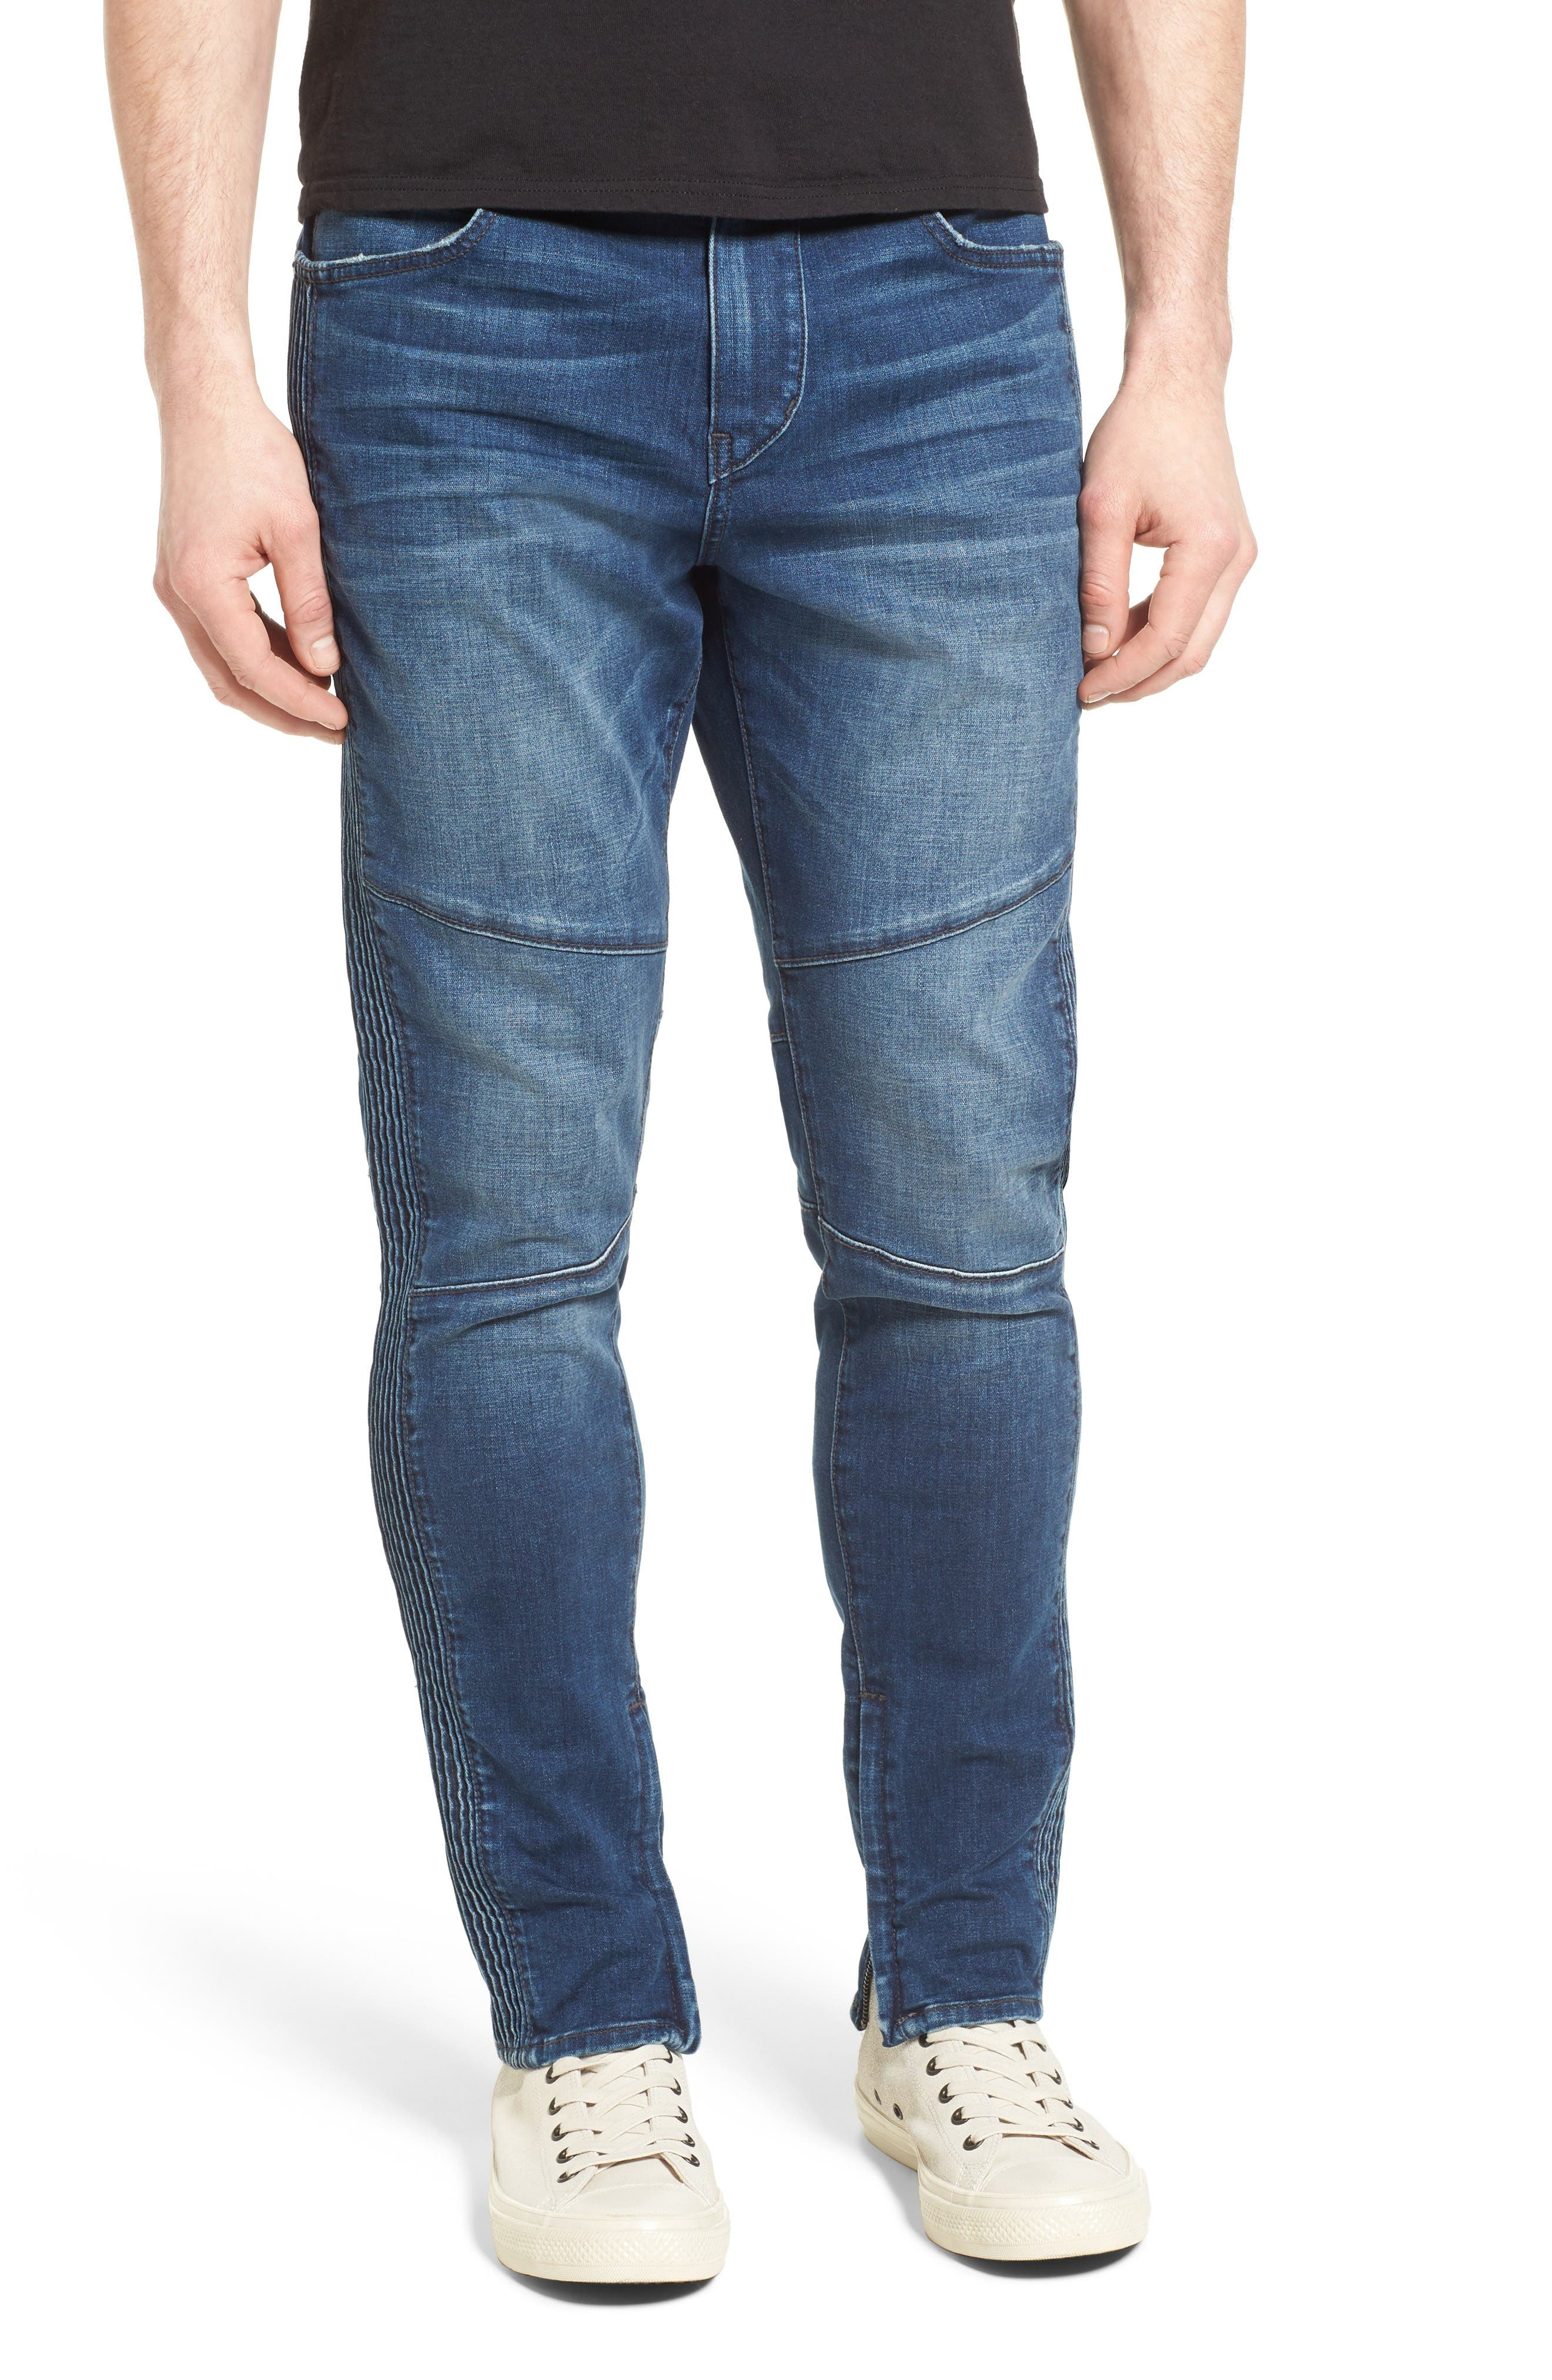 Racer Skinny Fit Jeans,                         Main,                         color, Whiskey Blues